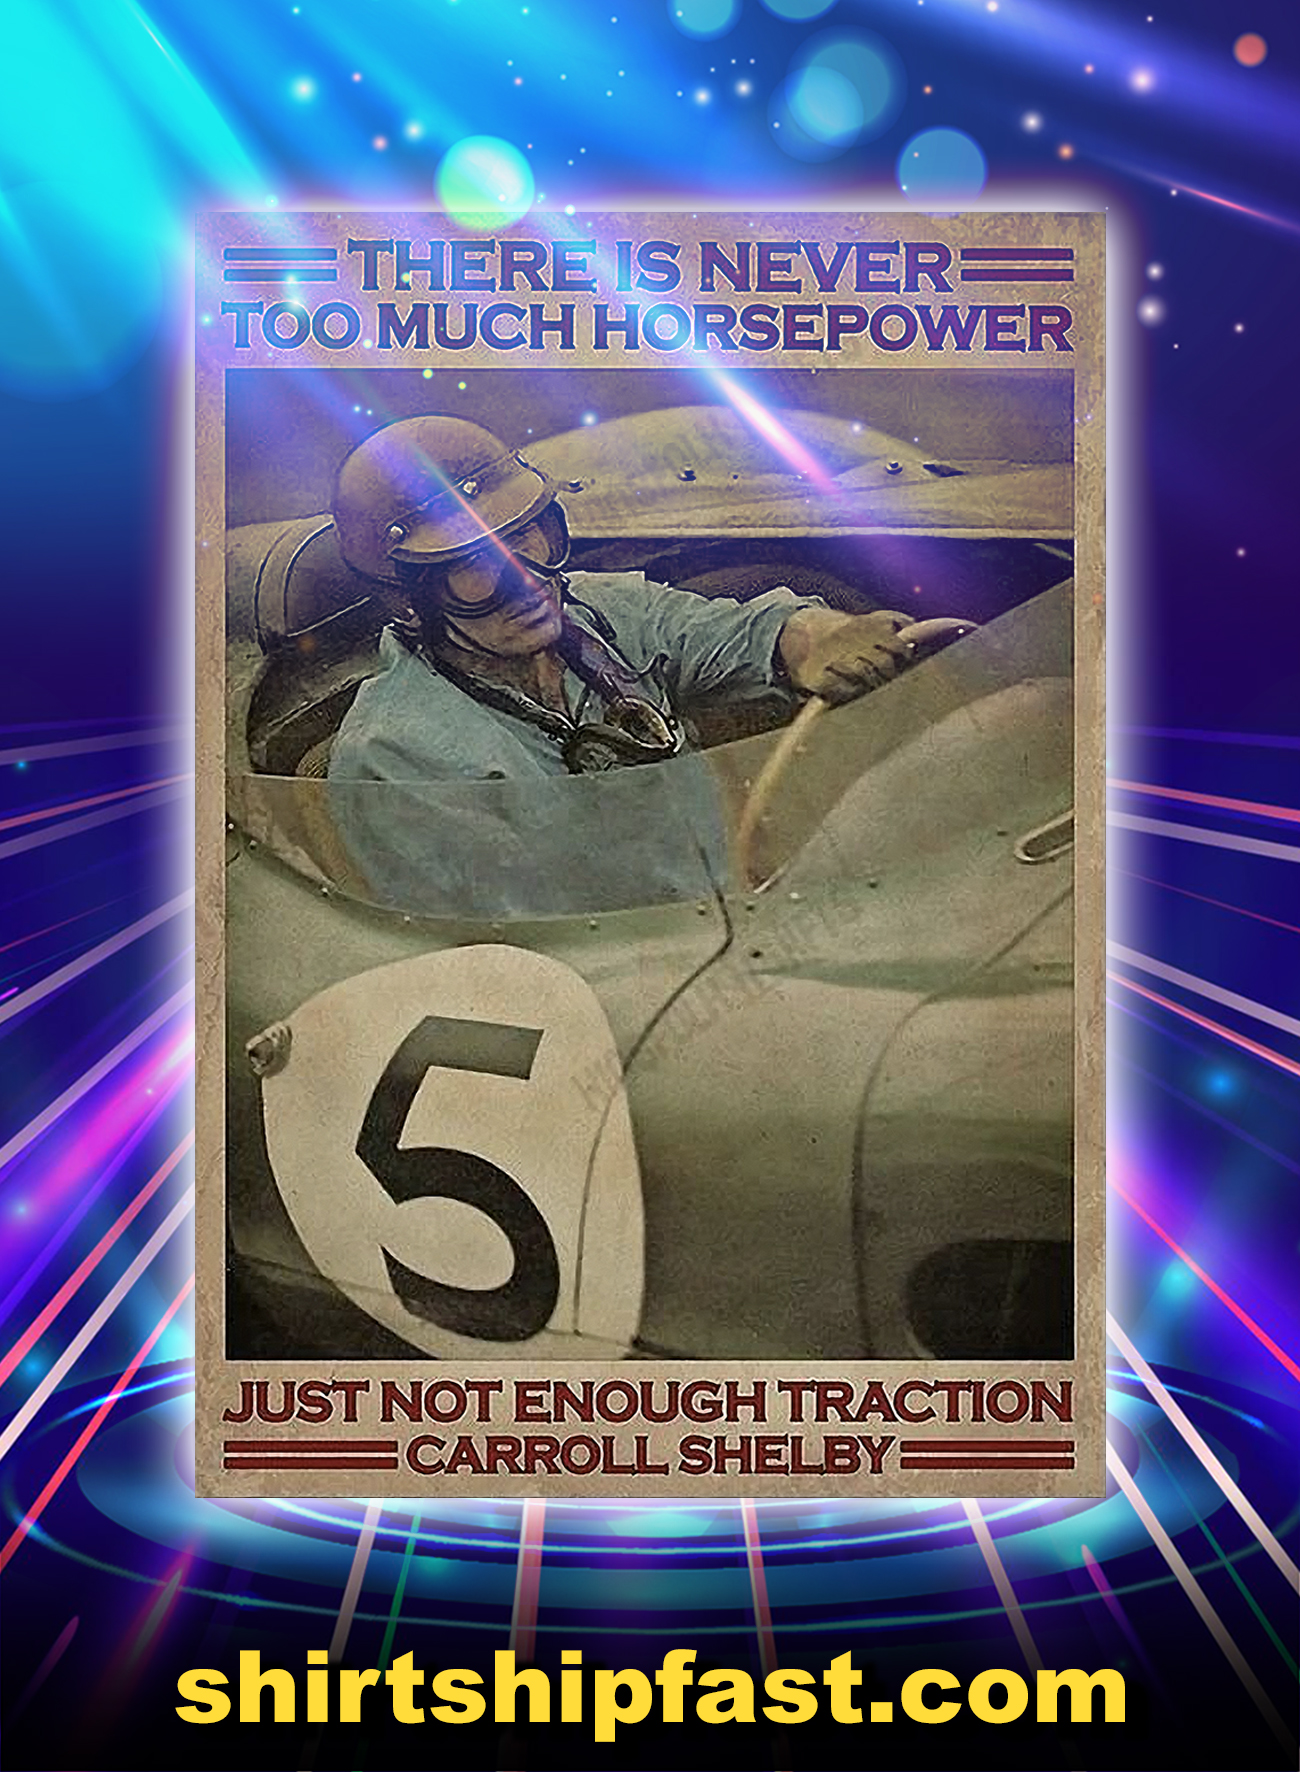 There is never too much horsepower just not enough traction Carroll Shelby canvas and poster - Picture 3